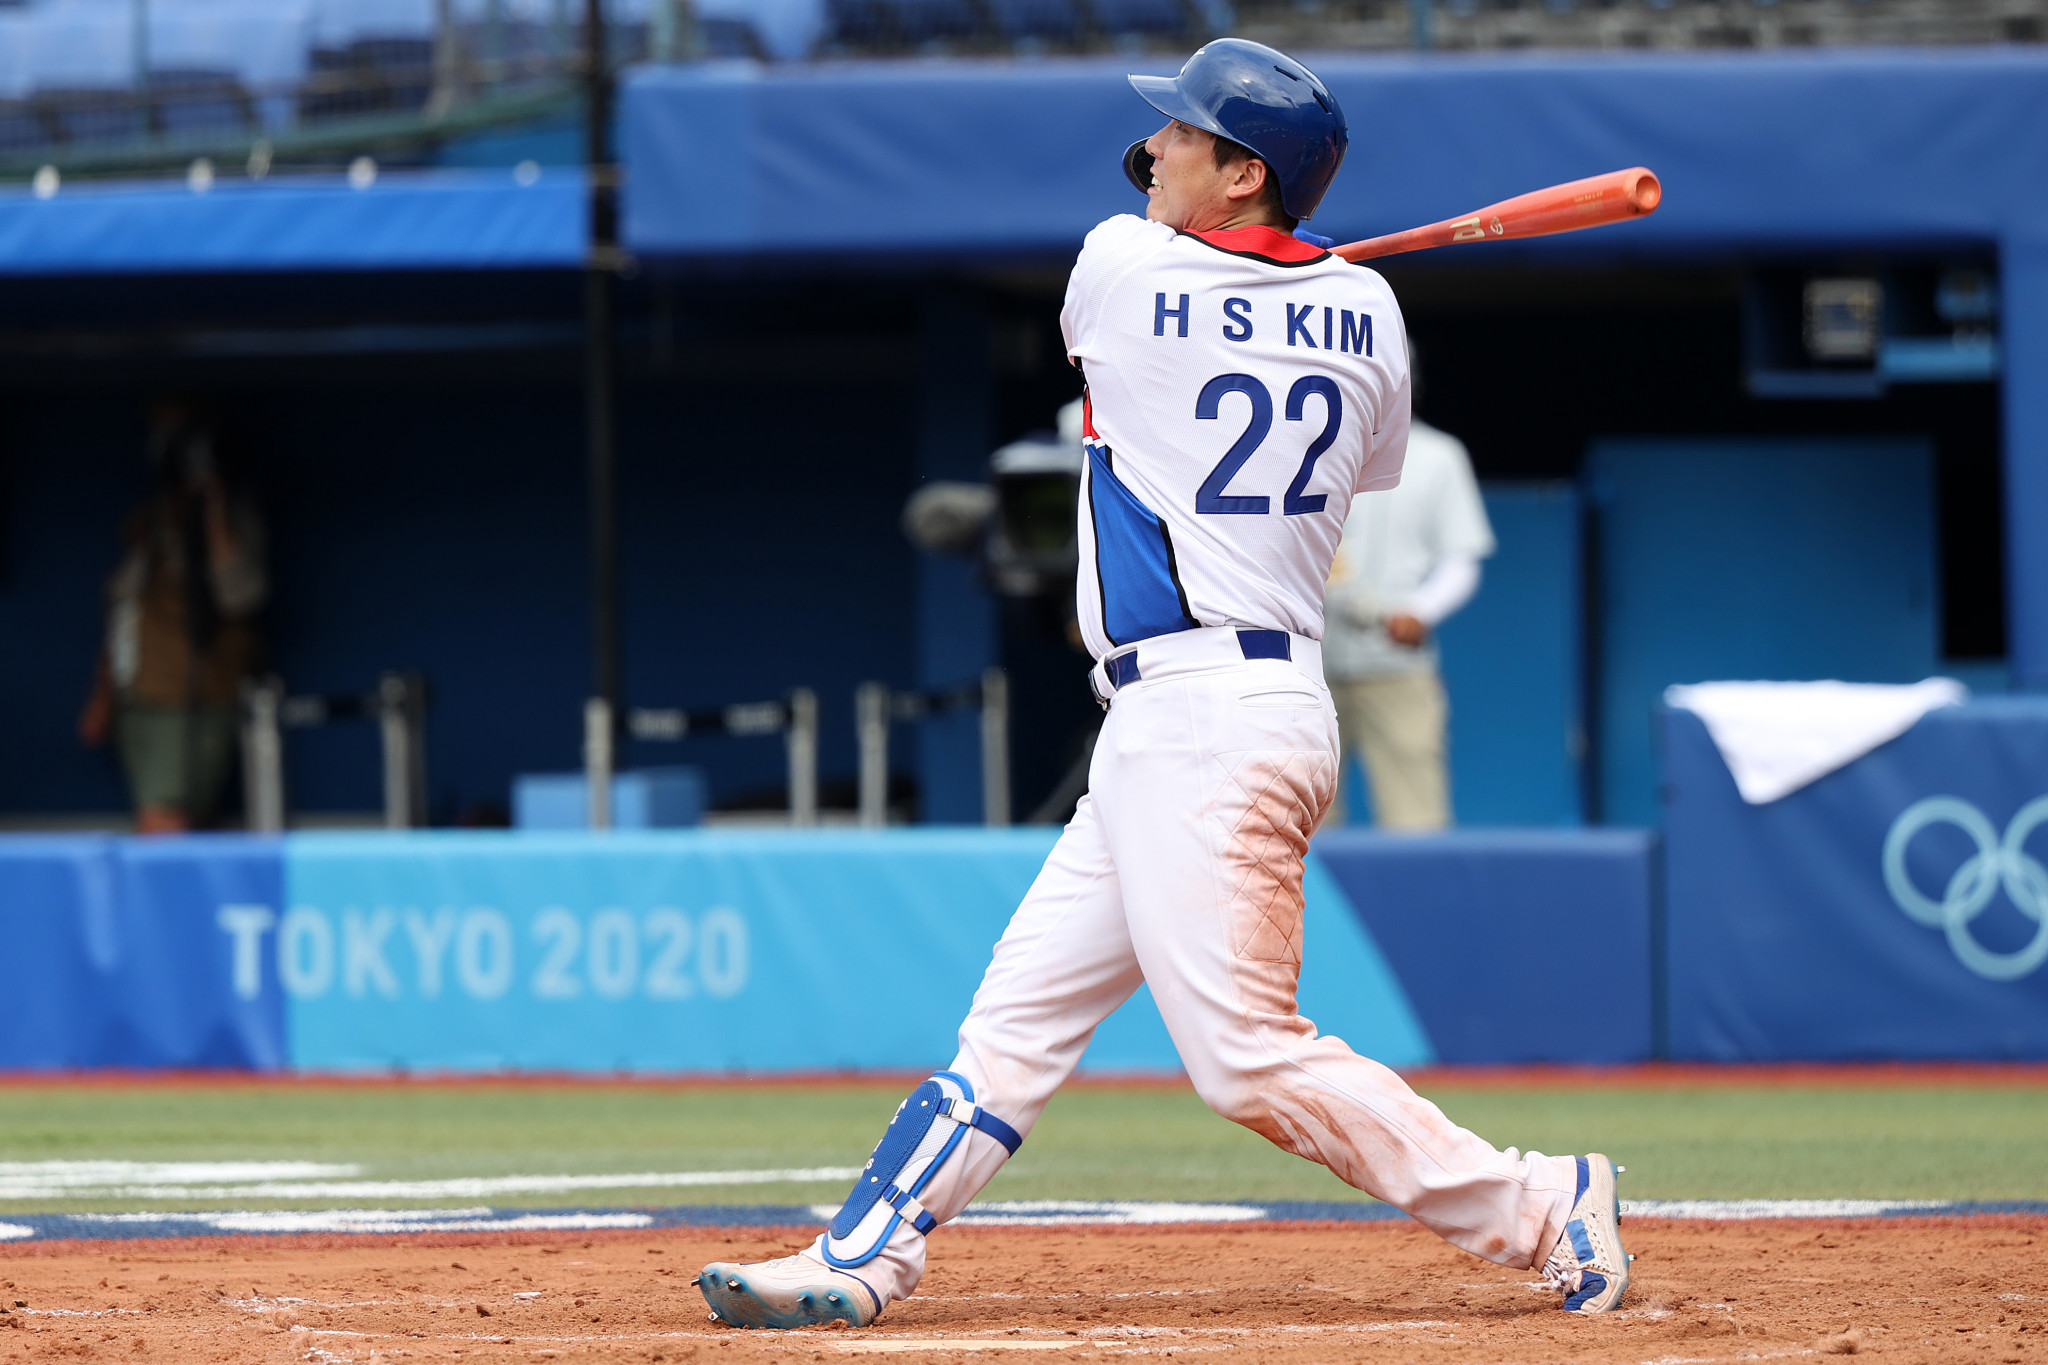 They will play South Korea, who smashed Israel 11-1, next, while the US can still reach the final ©Getty Images